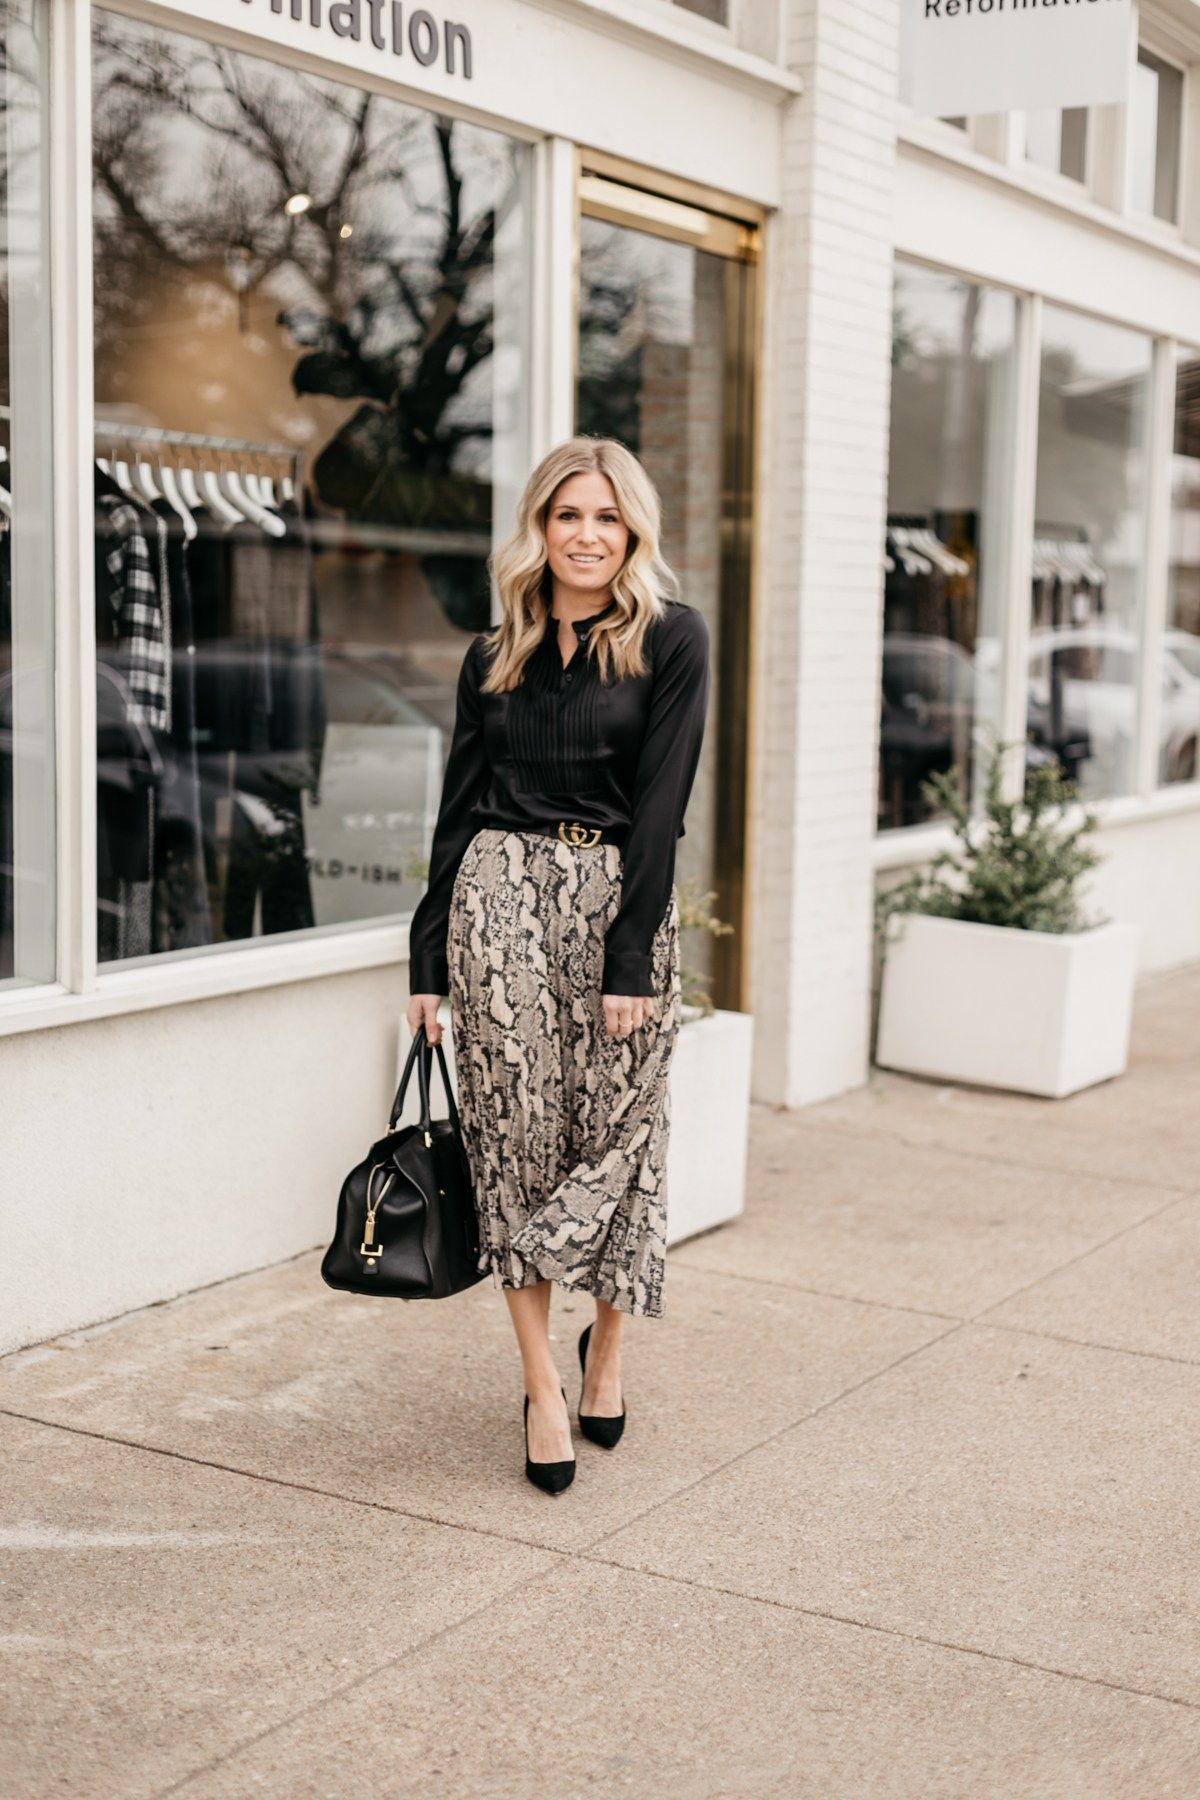 23edf6375 Sometimes the perfect work outfit is a skirt and a black blouse. I'm  sharing 5 ways to wear animal print for work on onesmallblonde.com.